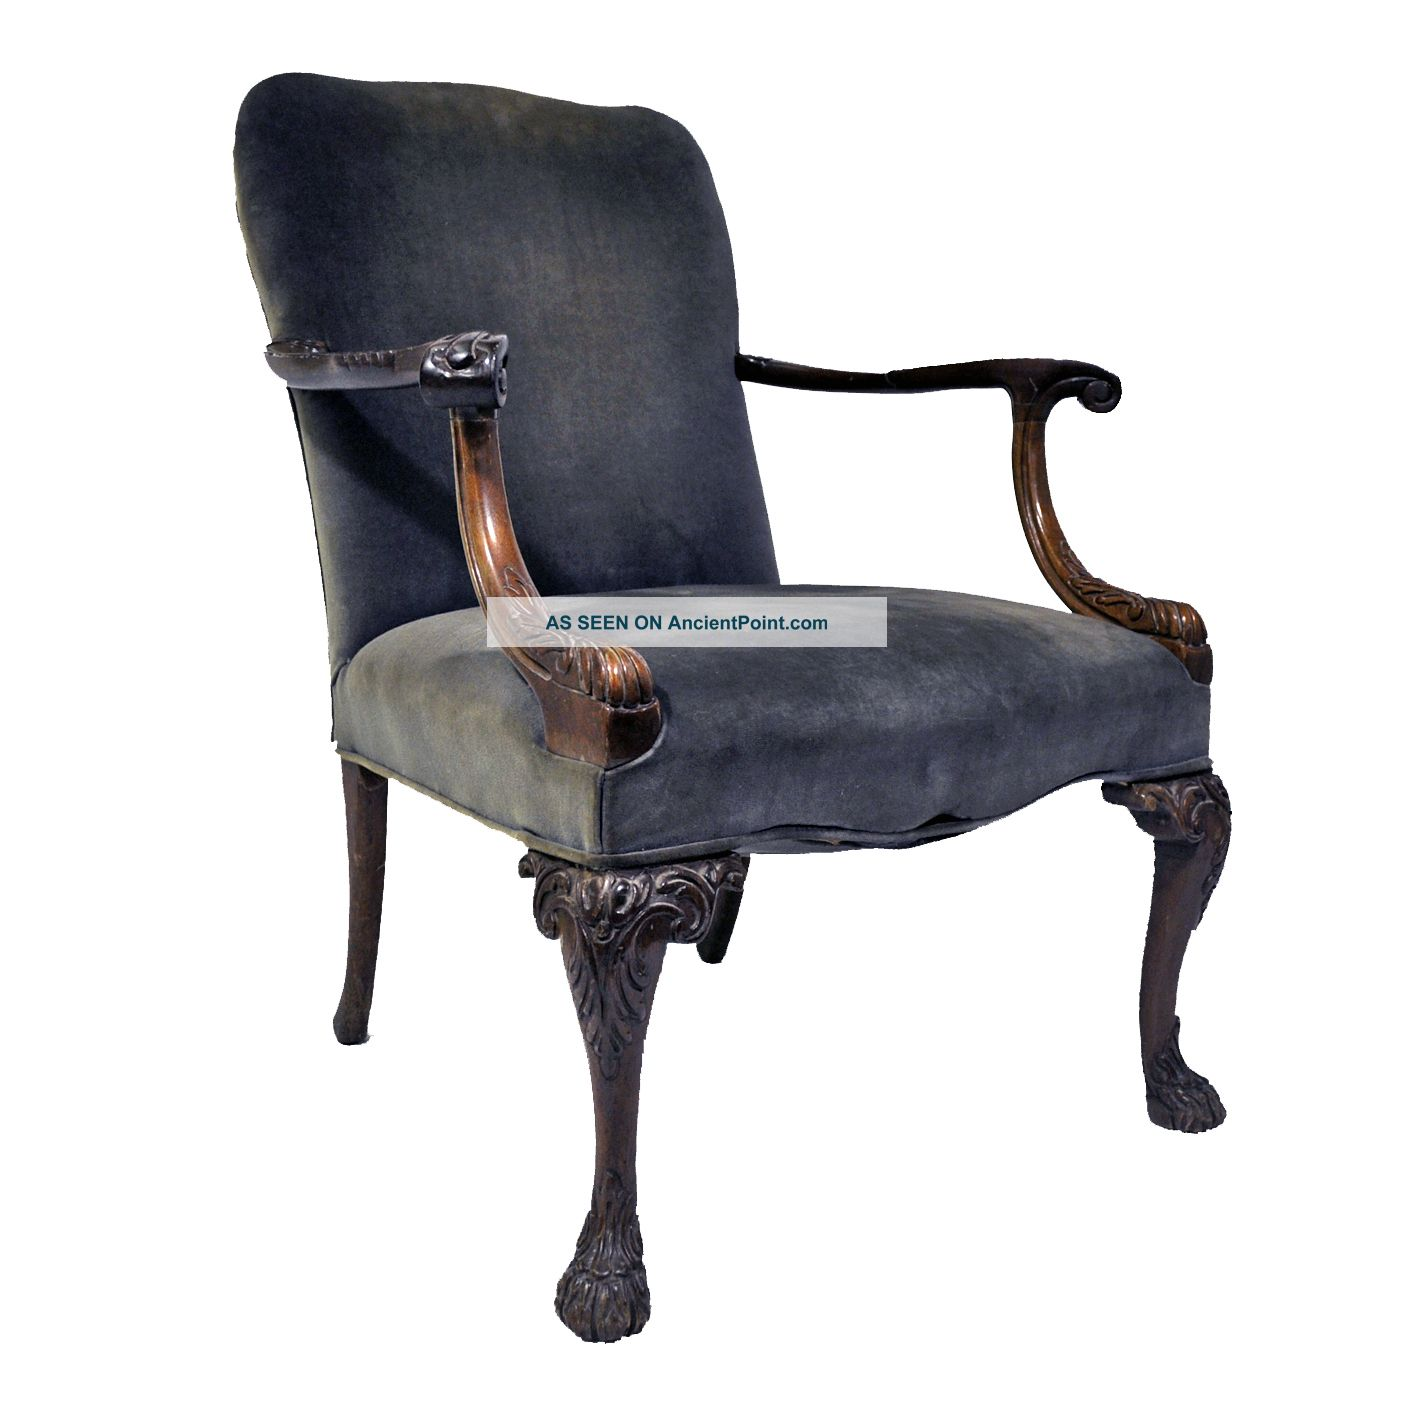 Victorian Style Accent Chairs images : antiquedarkgreypewtervelvetwoodcarvedvictorianstyleaccentchair1lgw from pixcooler.com size 1415 x 1411 jpeg 126kB